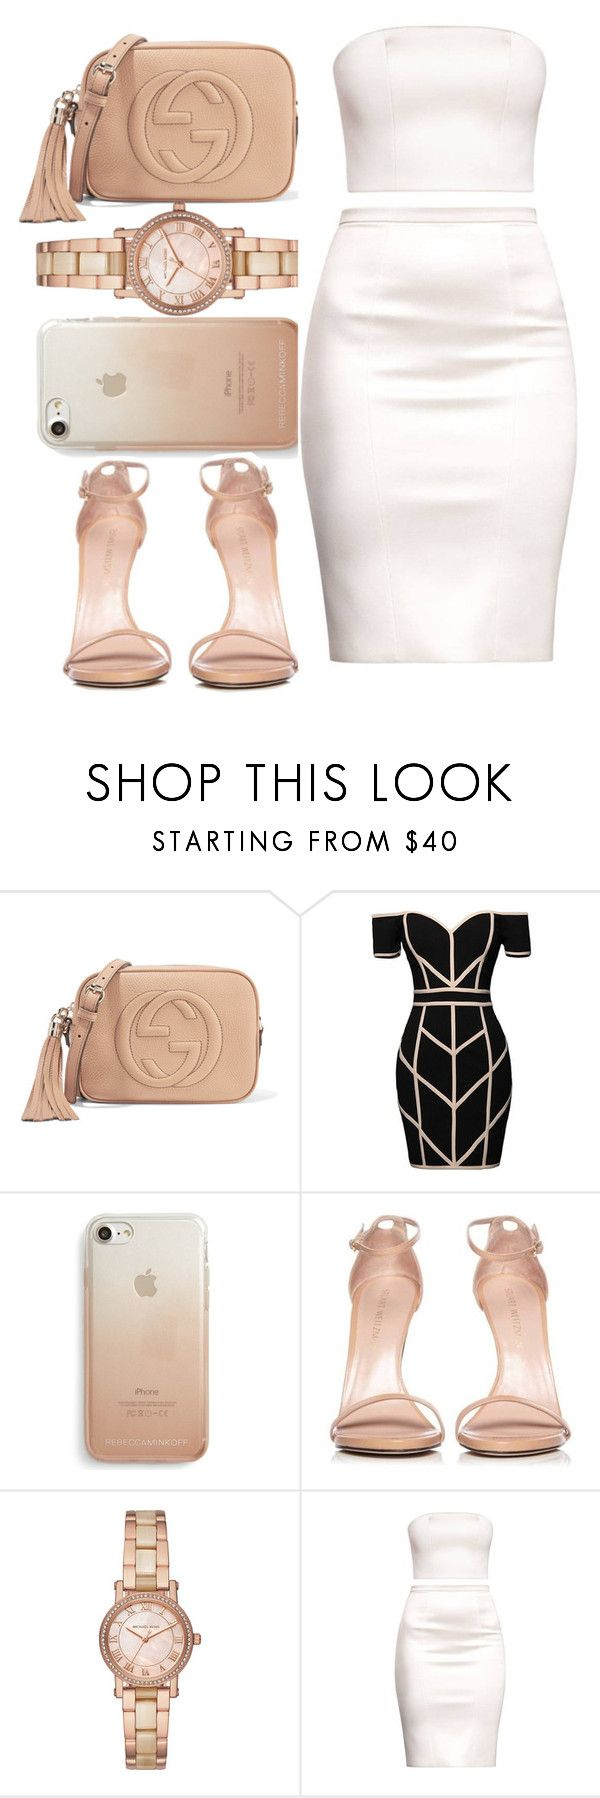 """ I want you stay ..... "" by glitterymula ❤ liked on Polyvore featuring Gucci, Command, Rebecca Minkoff, Stuart Weitzman and Michael Kors"